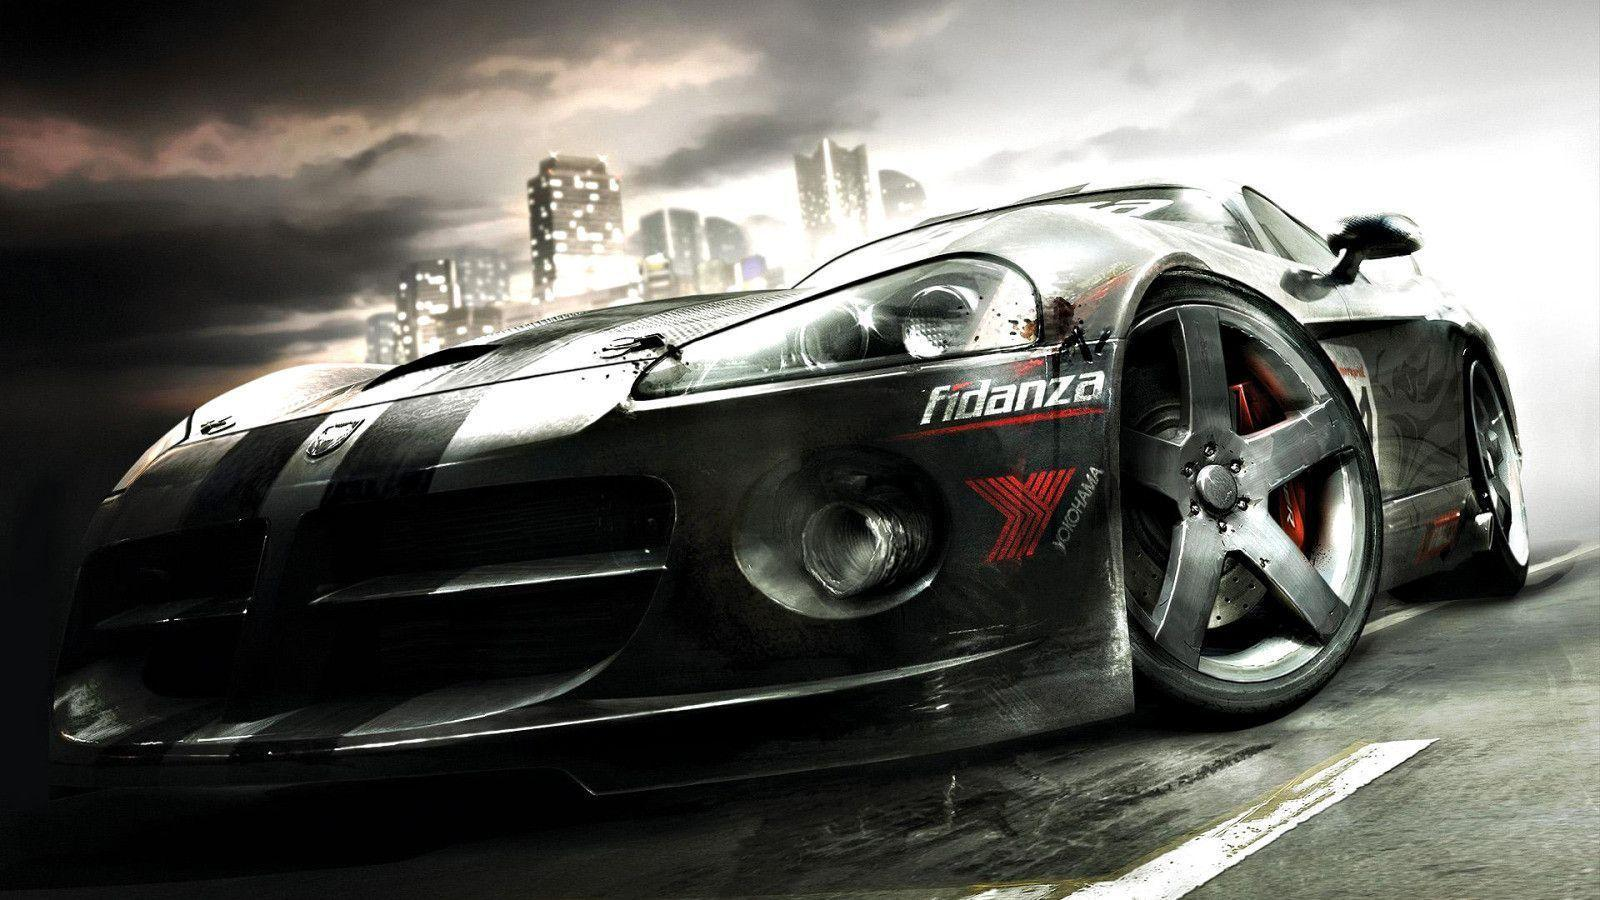 Dodge Sports Car widescreen wallpaper | Wide-